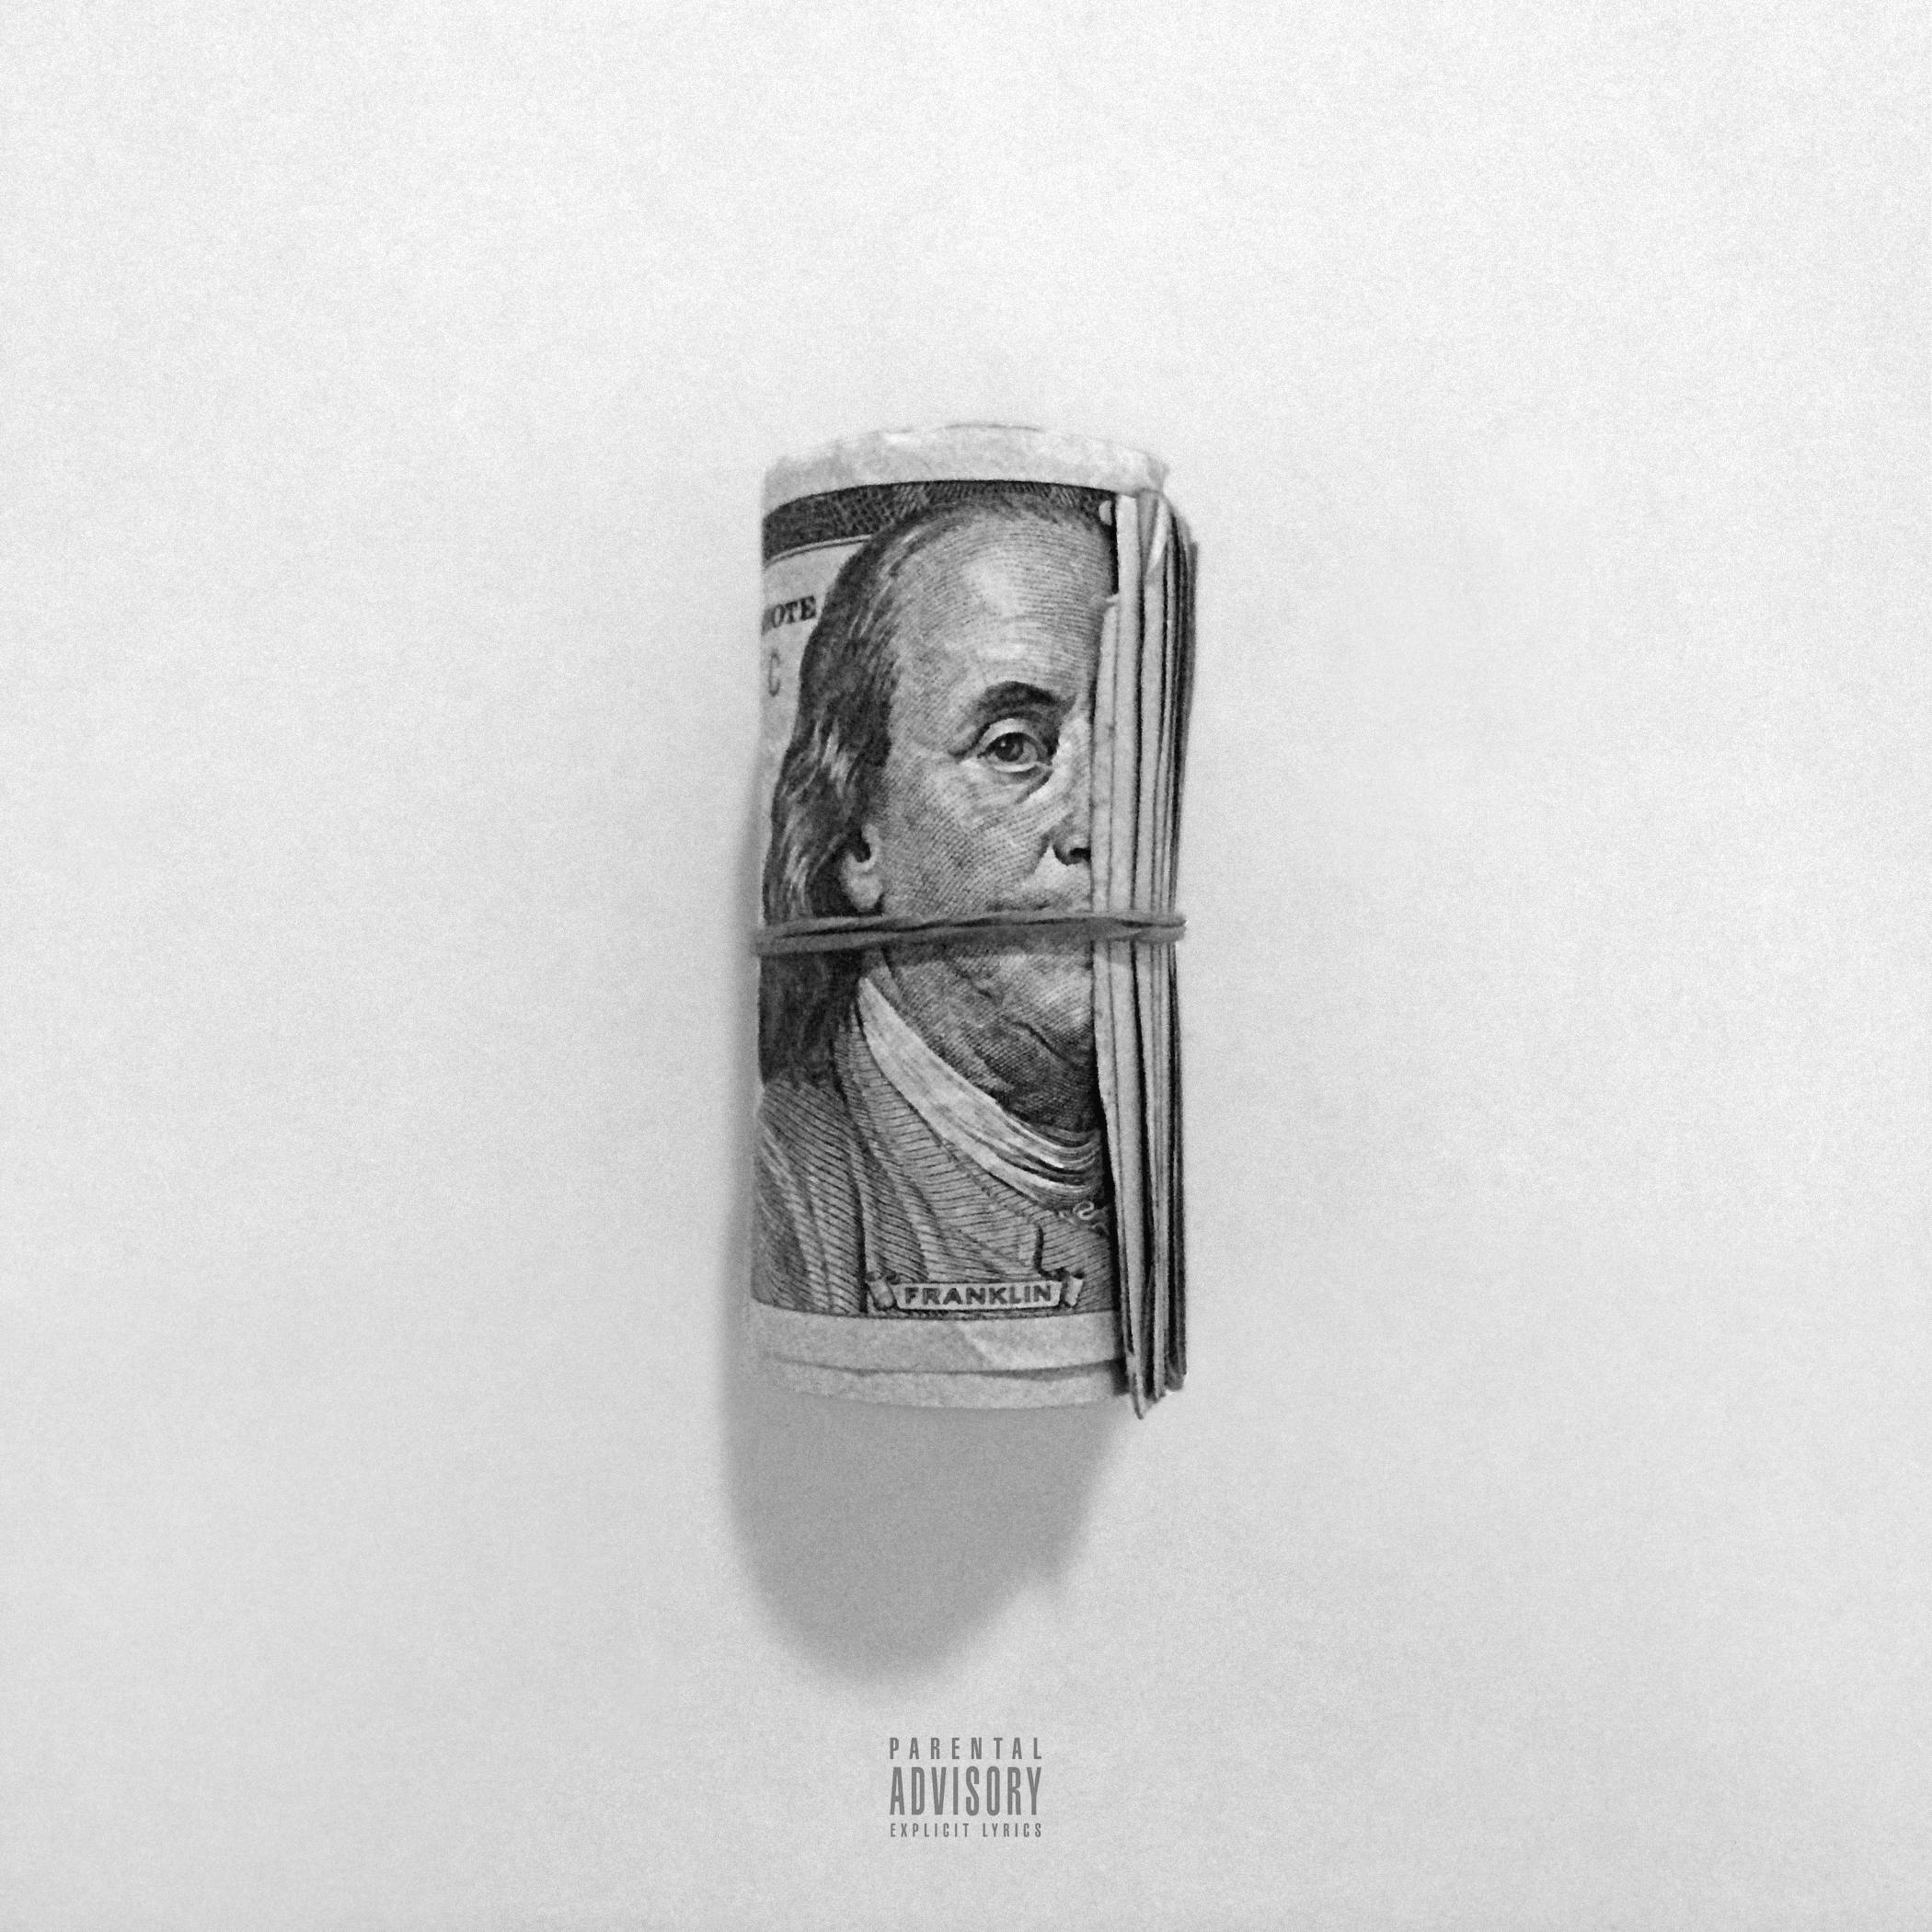 Lunch Money - A roll of Benjamins tied up in a rubberband to symbolize all the lunch money Pusha T stole from everyone at school that day? Priceless. (Photo: Def Jam)